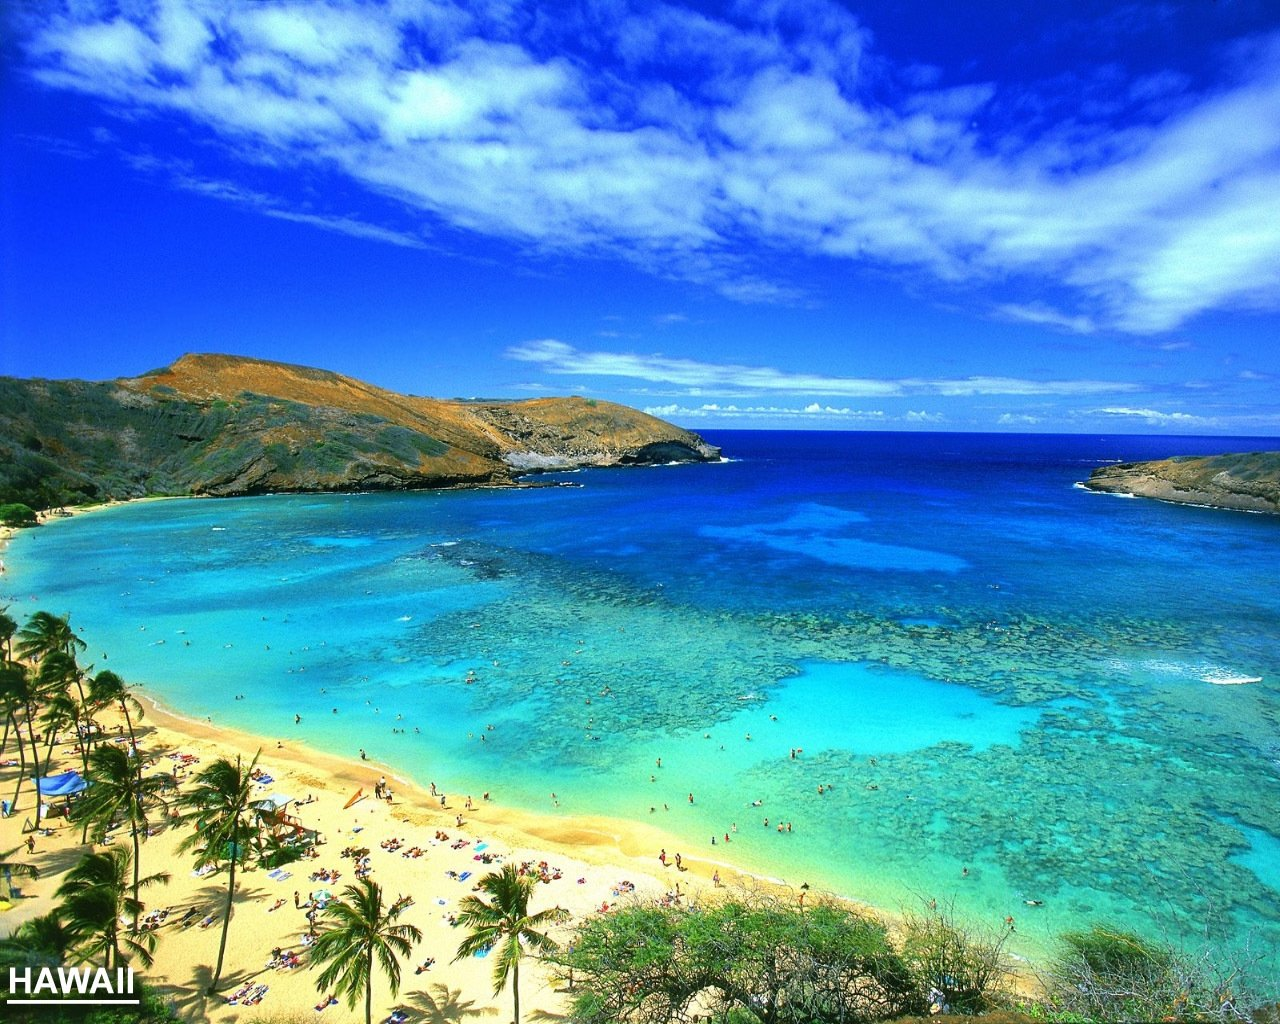 Hawaii Wallpapers Hd: HD Hawaii Wallpapers